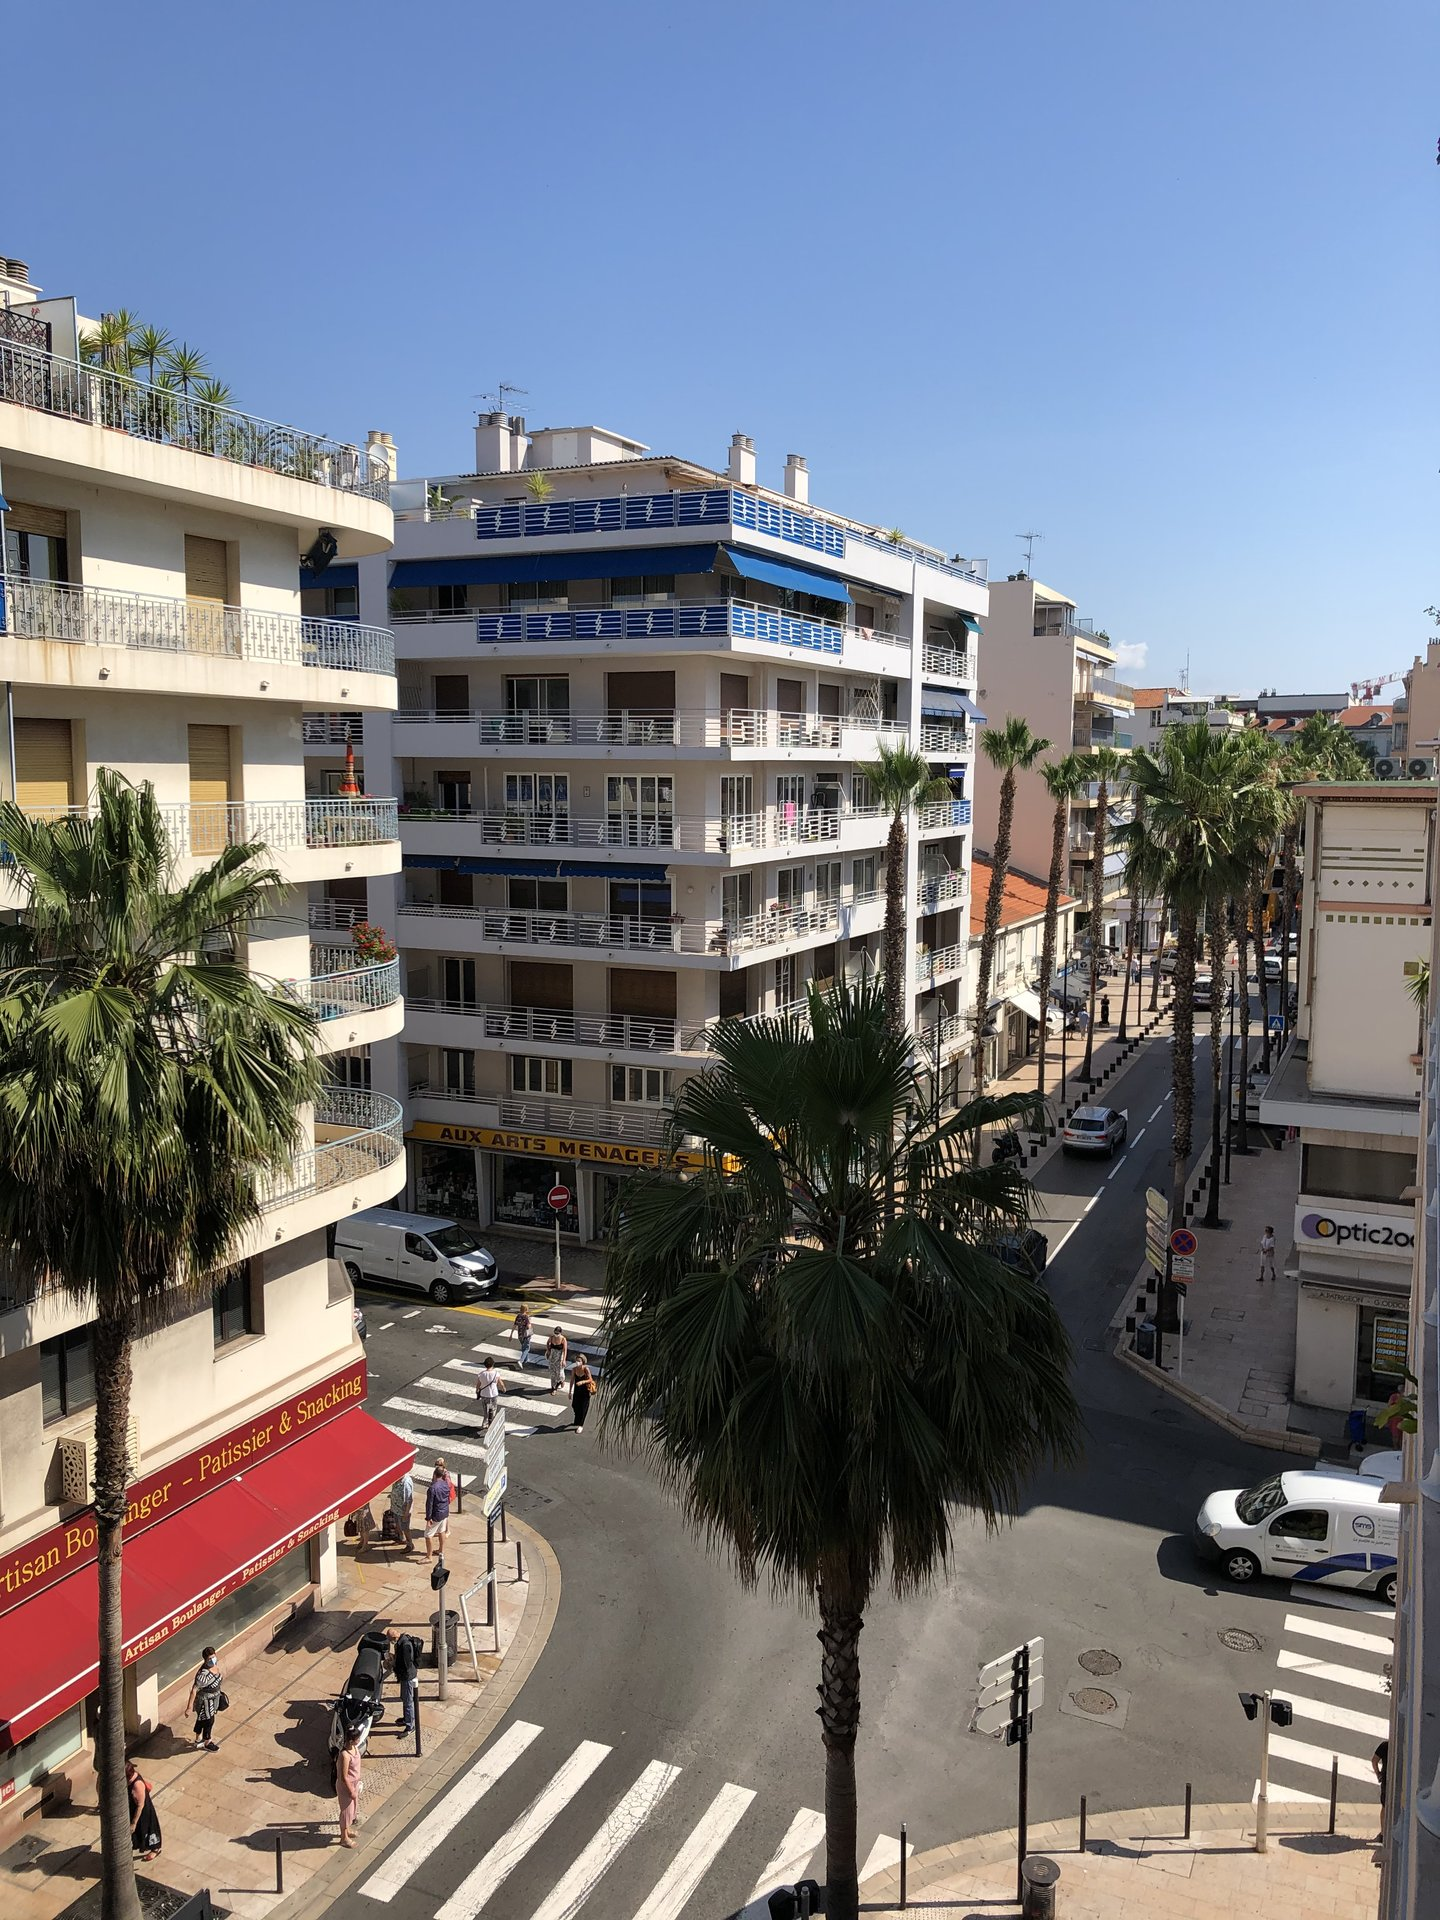 3 bedroom apartment for sale, Antibes, full center